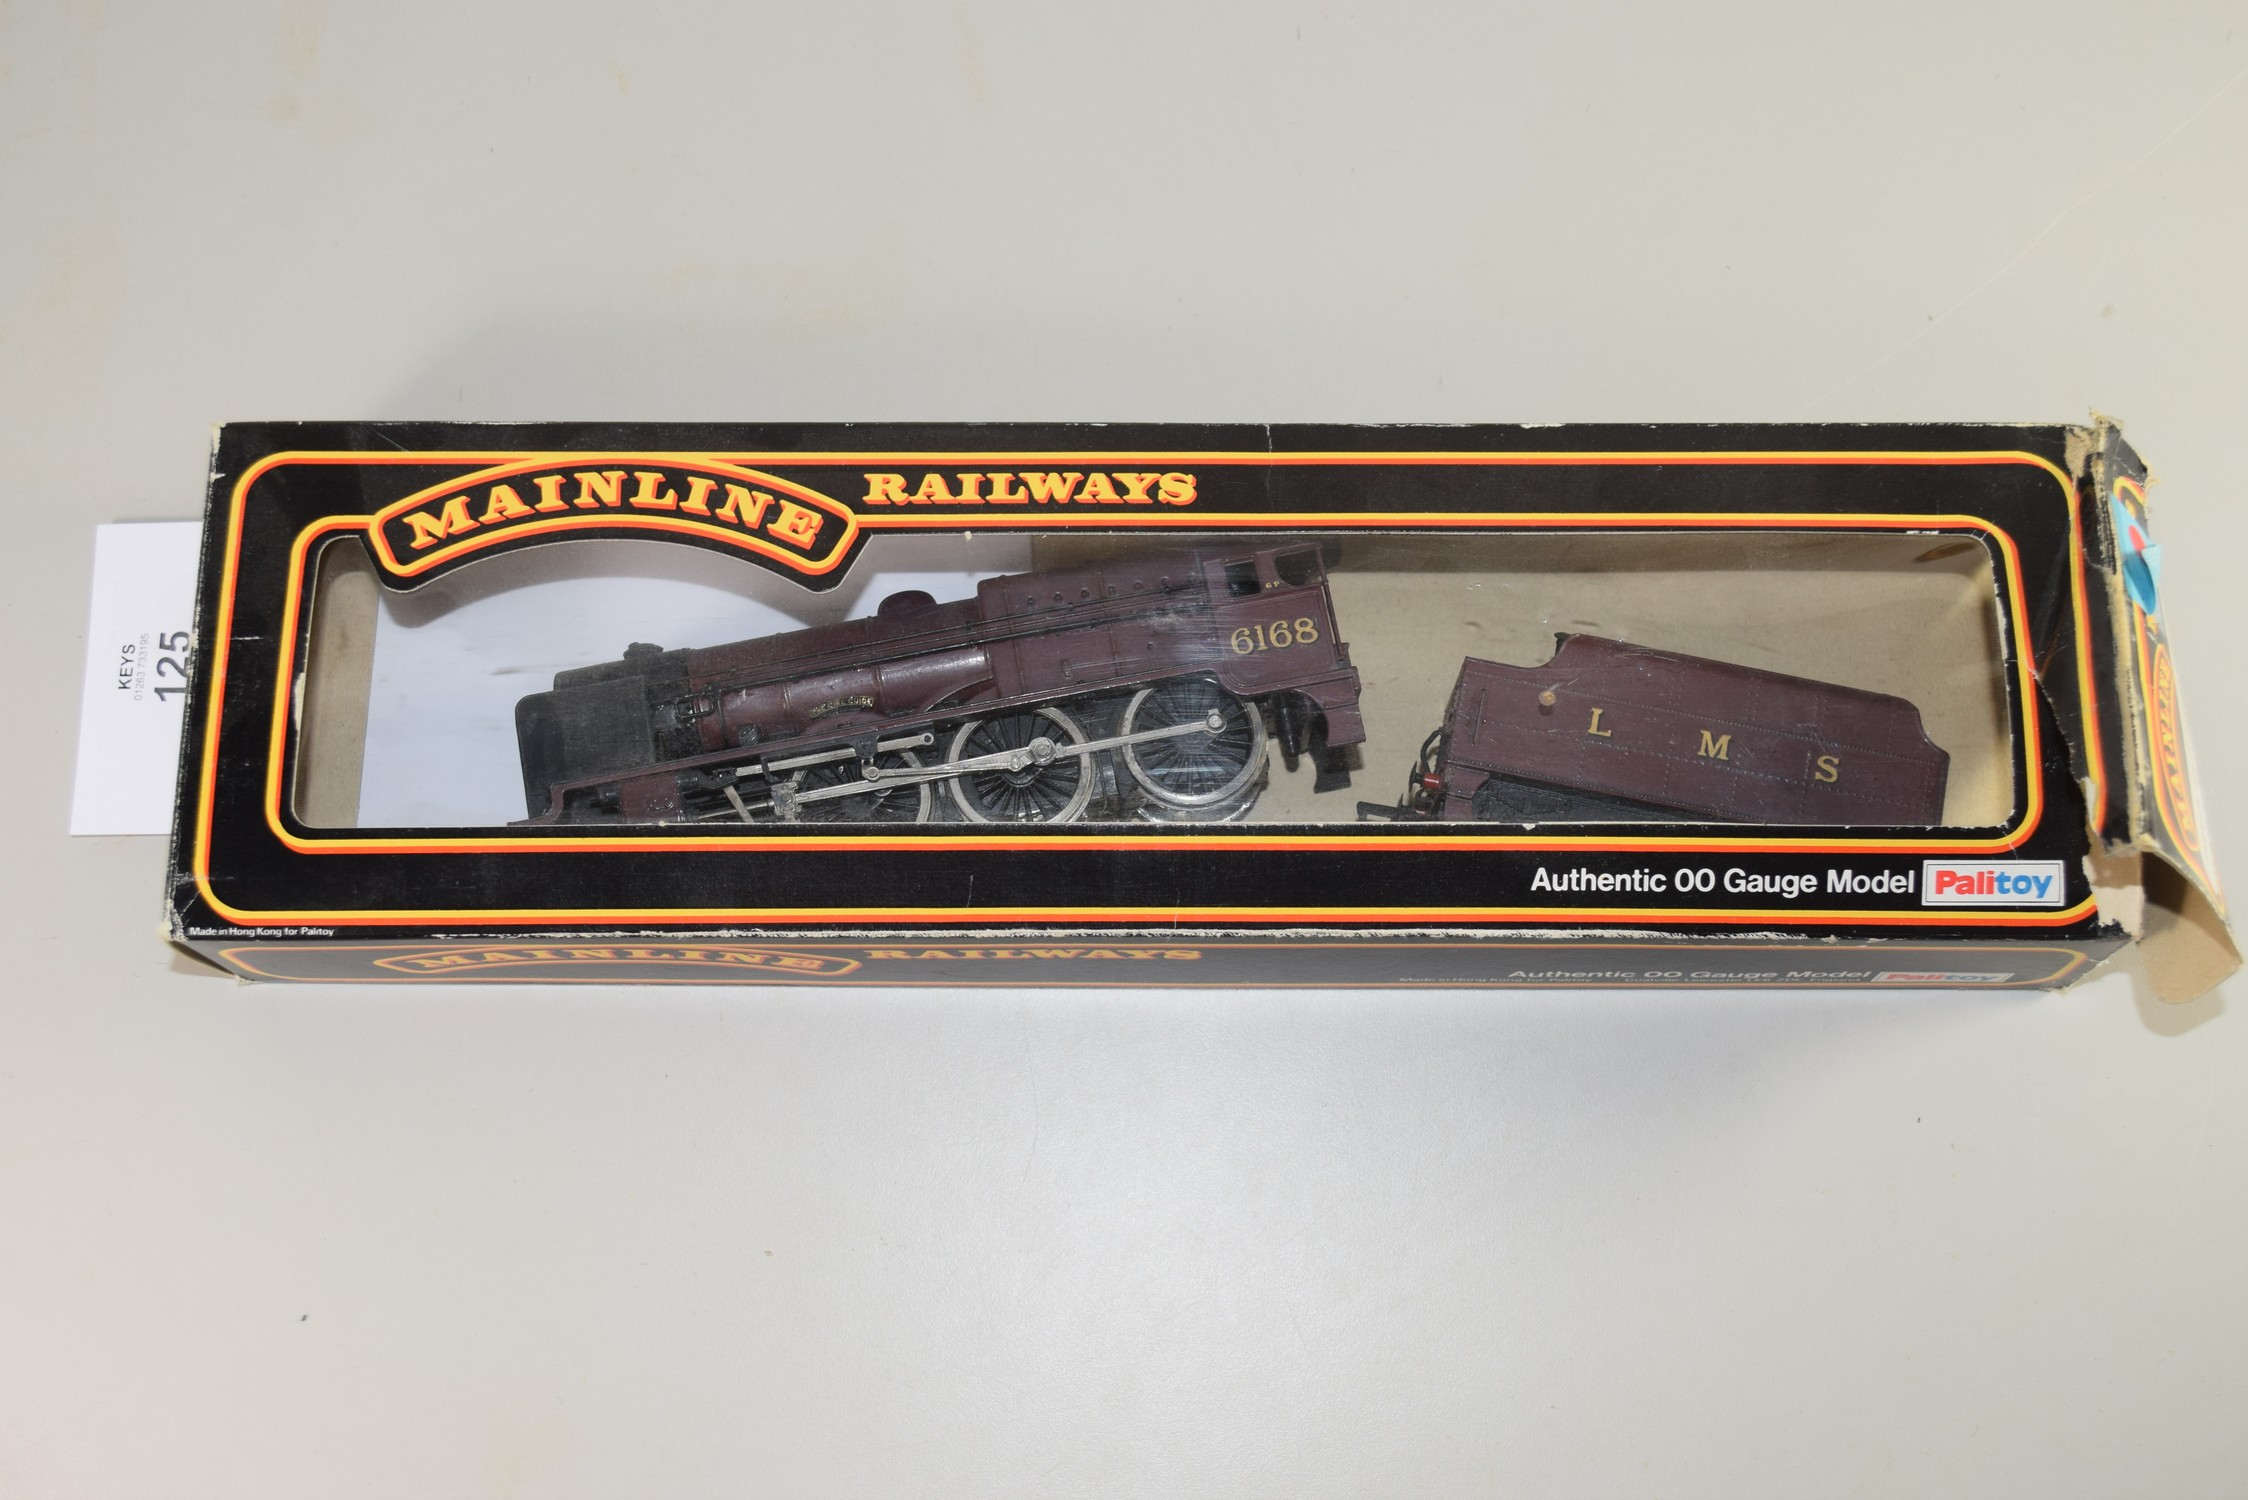 """Mainline Railways 00 gauge """"The Girl Guide"""" locomotive No 6168 (in replacement box)"""